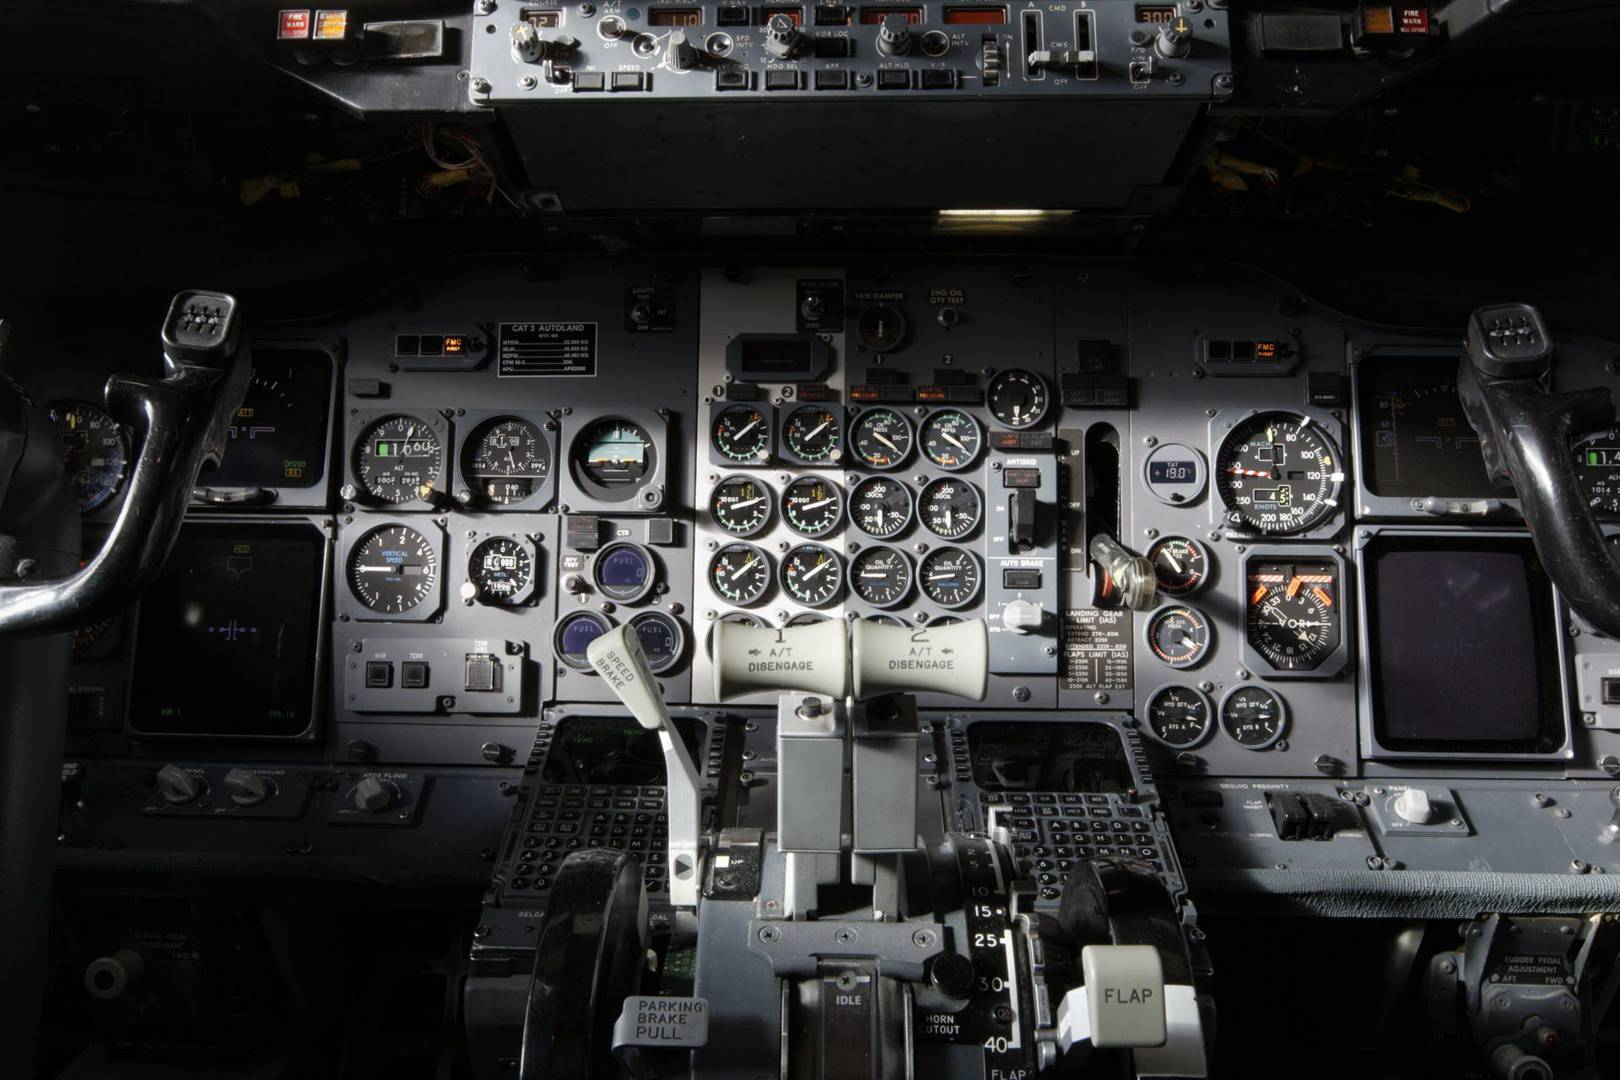 The importance of typography in aircraft piloting systems